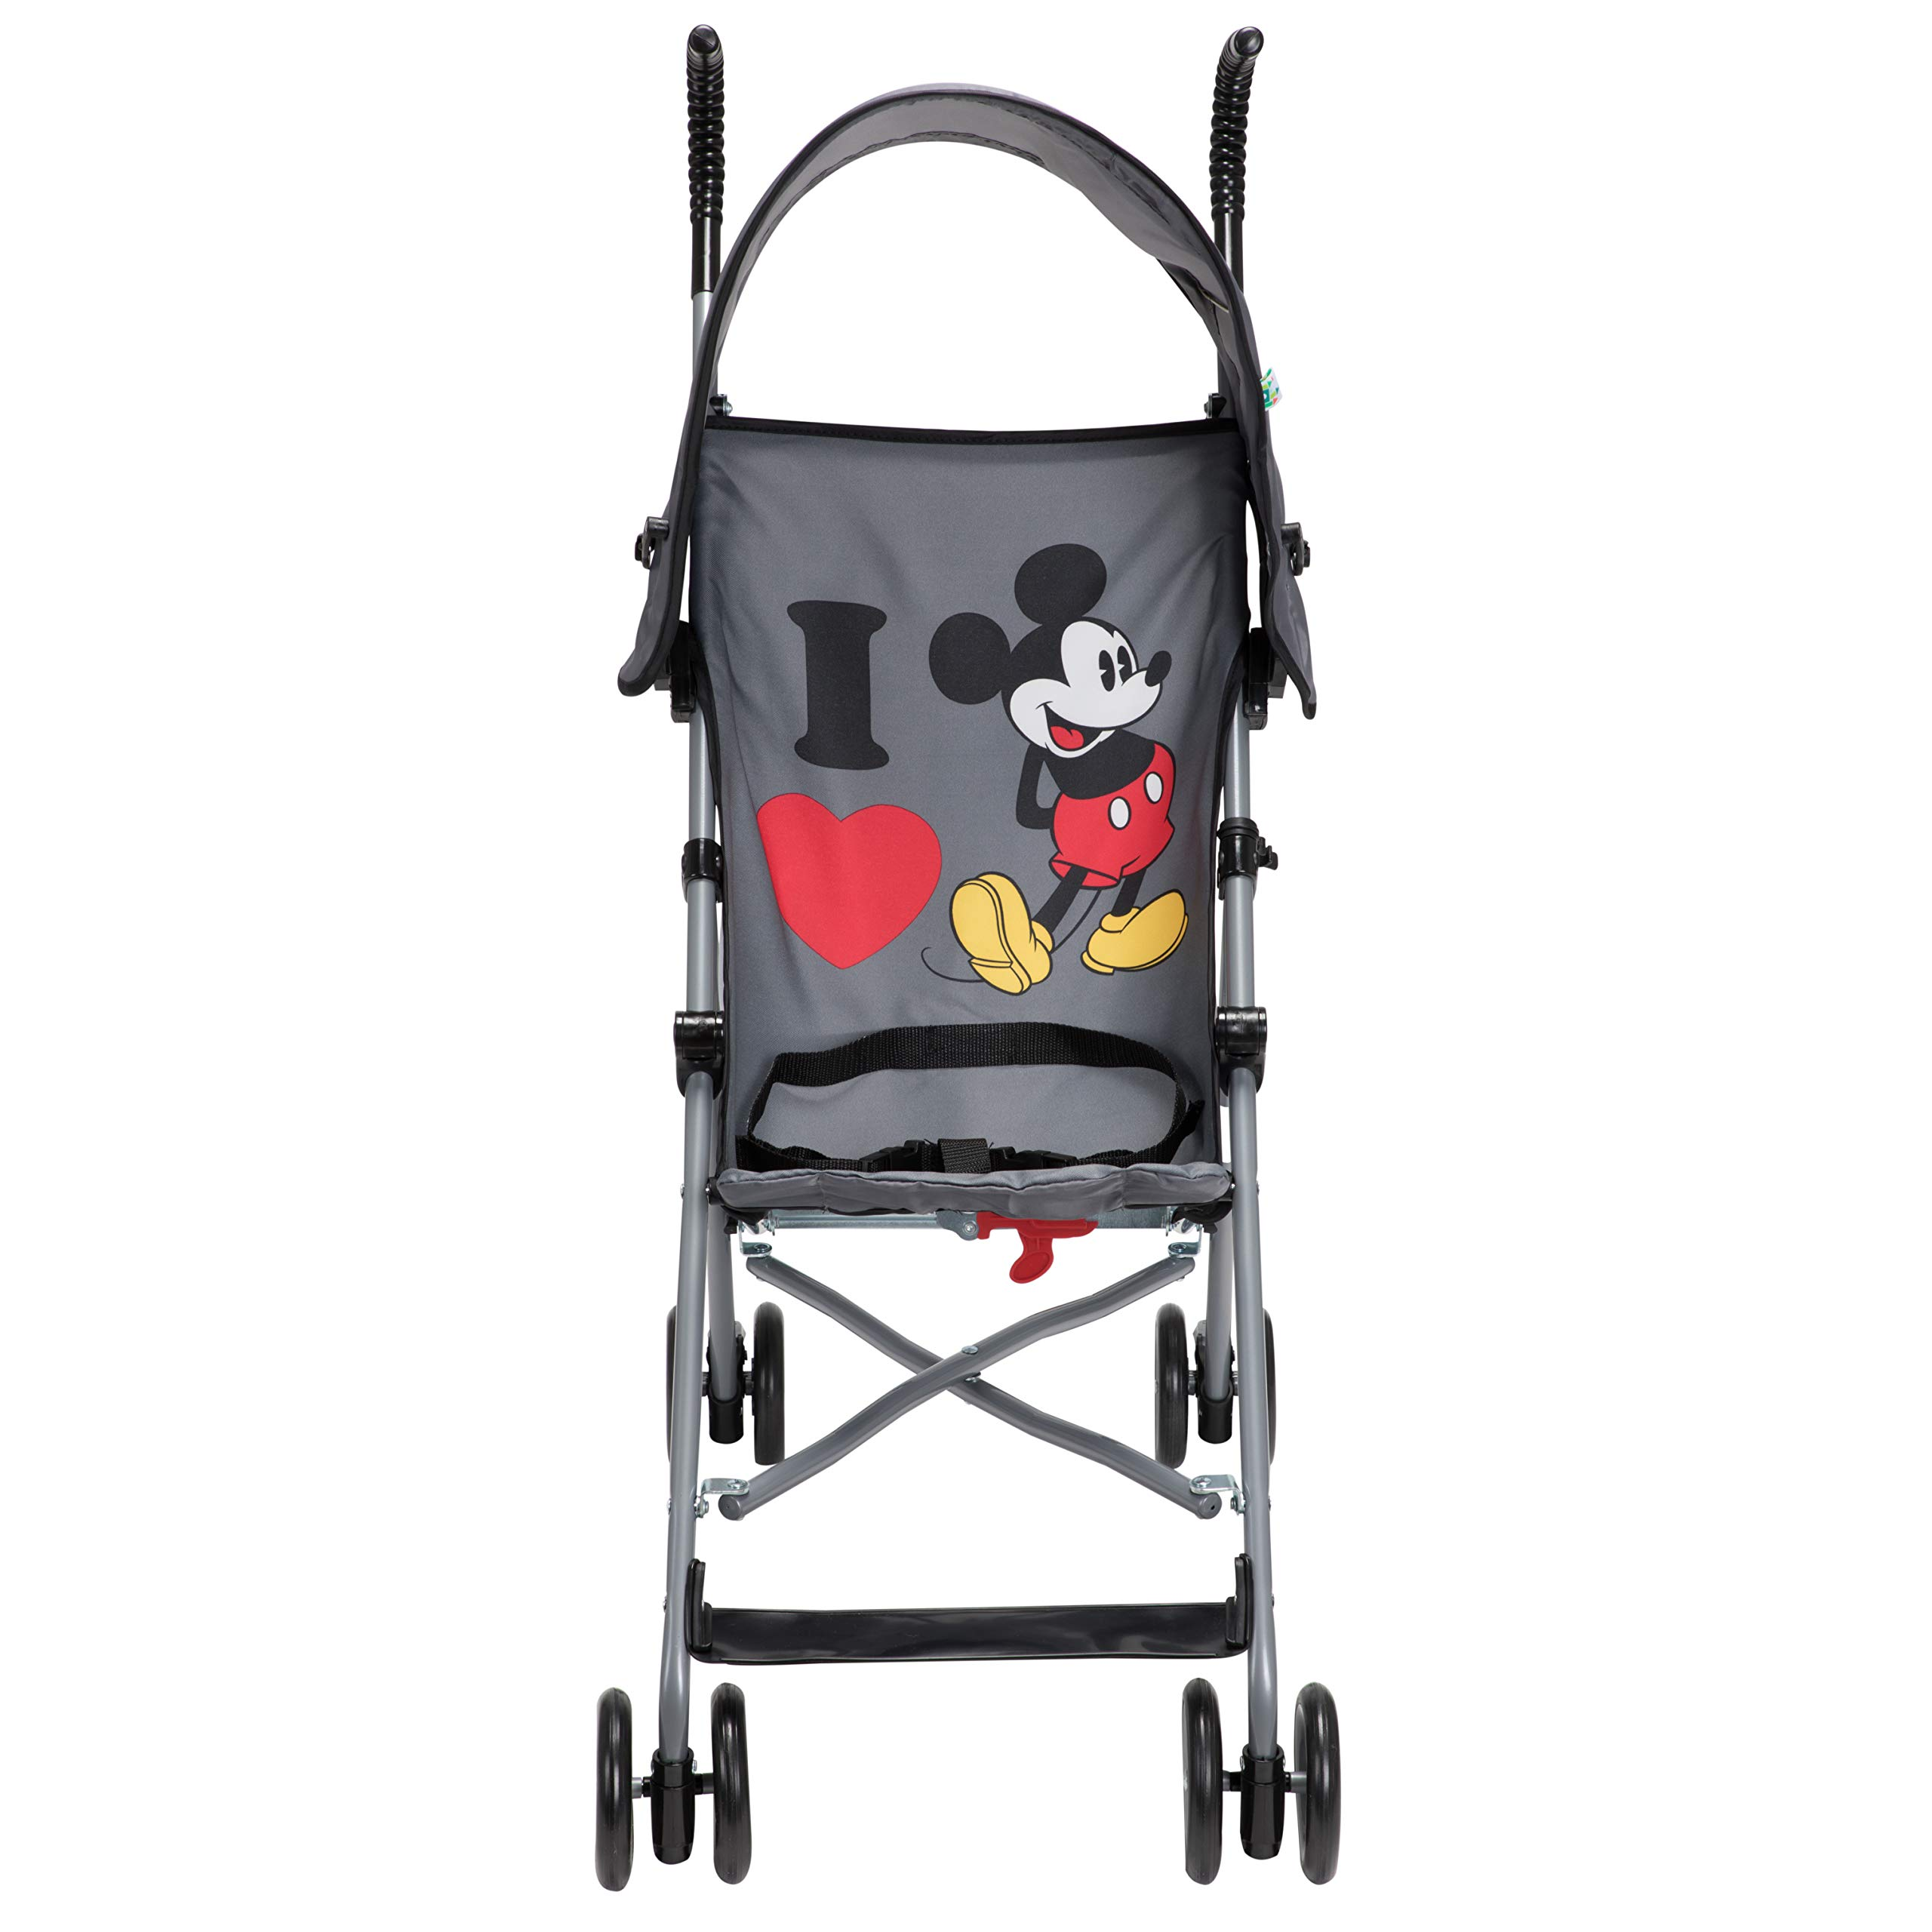 Disney Umbrella Stroller with Canopy, I Heart Mickey by Disney (Image #3)